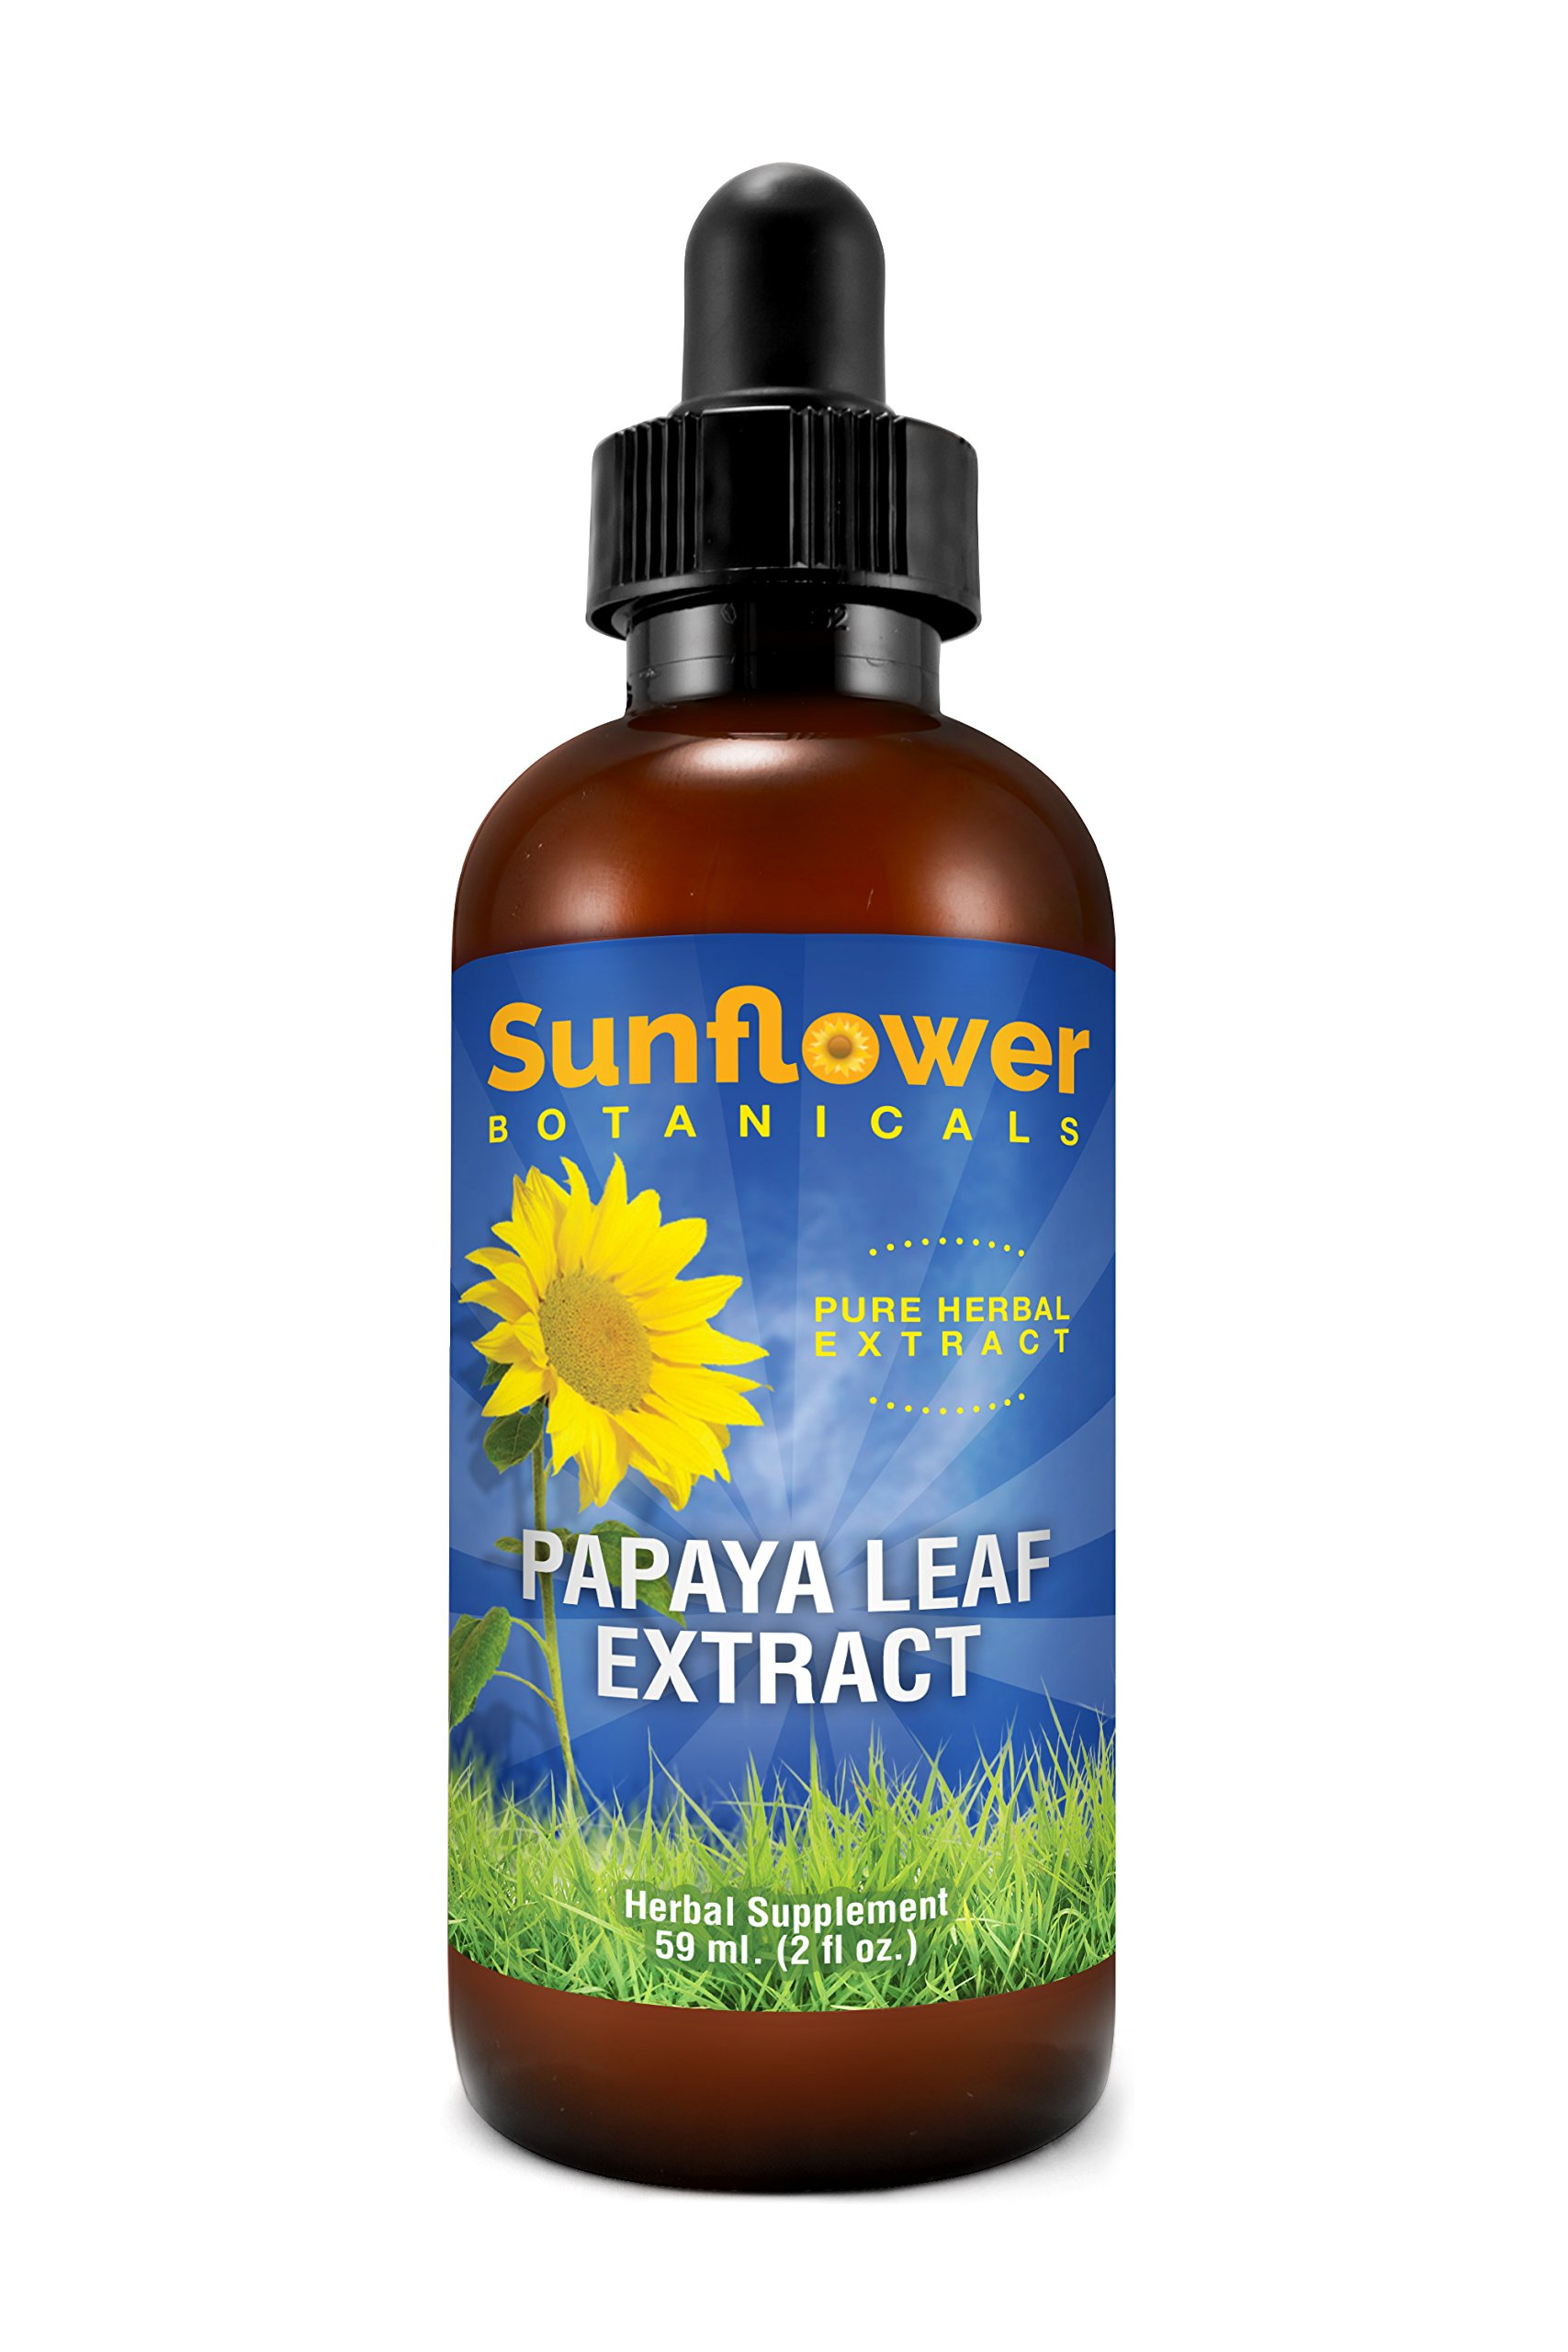 Papaya Leaf Extract, (Paw Paw Leaf Extract), All Natural, 2 Ounces, Dropper-Top Glass Bottle